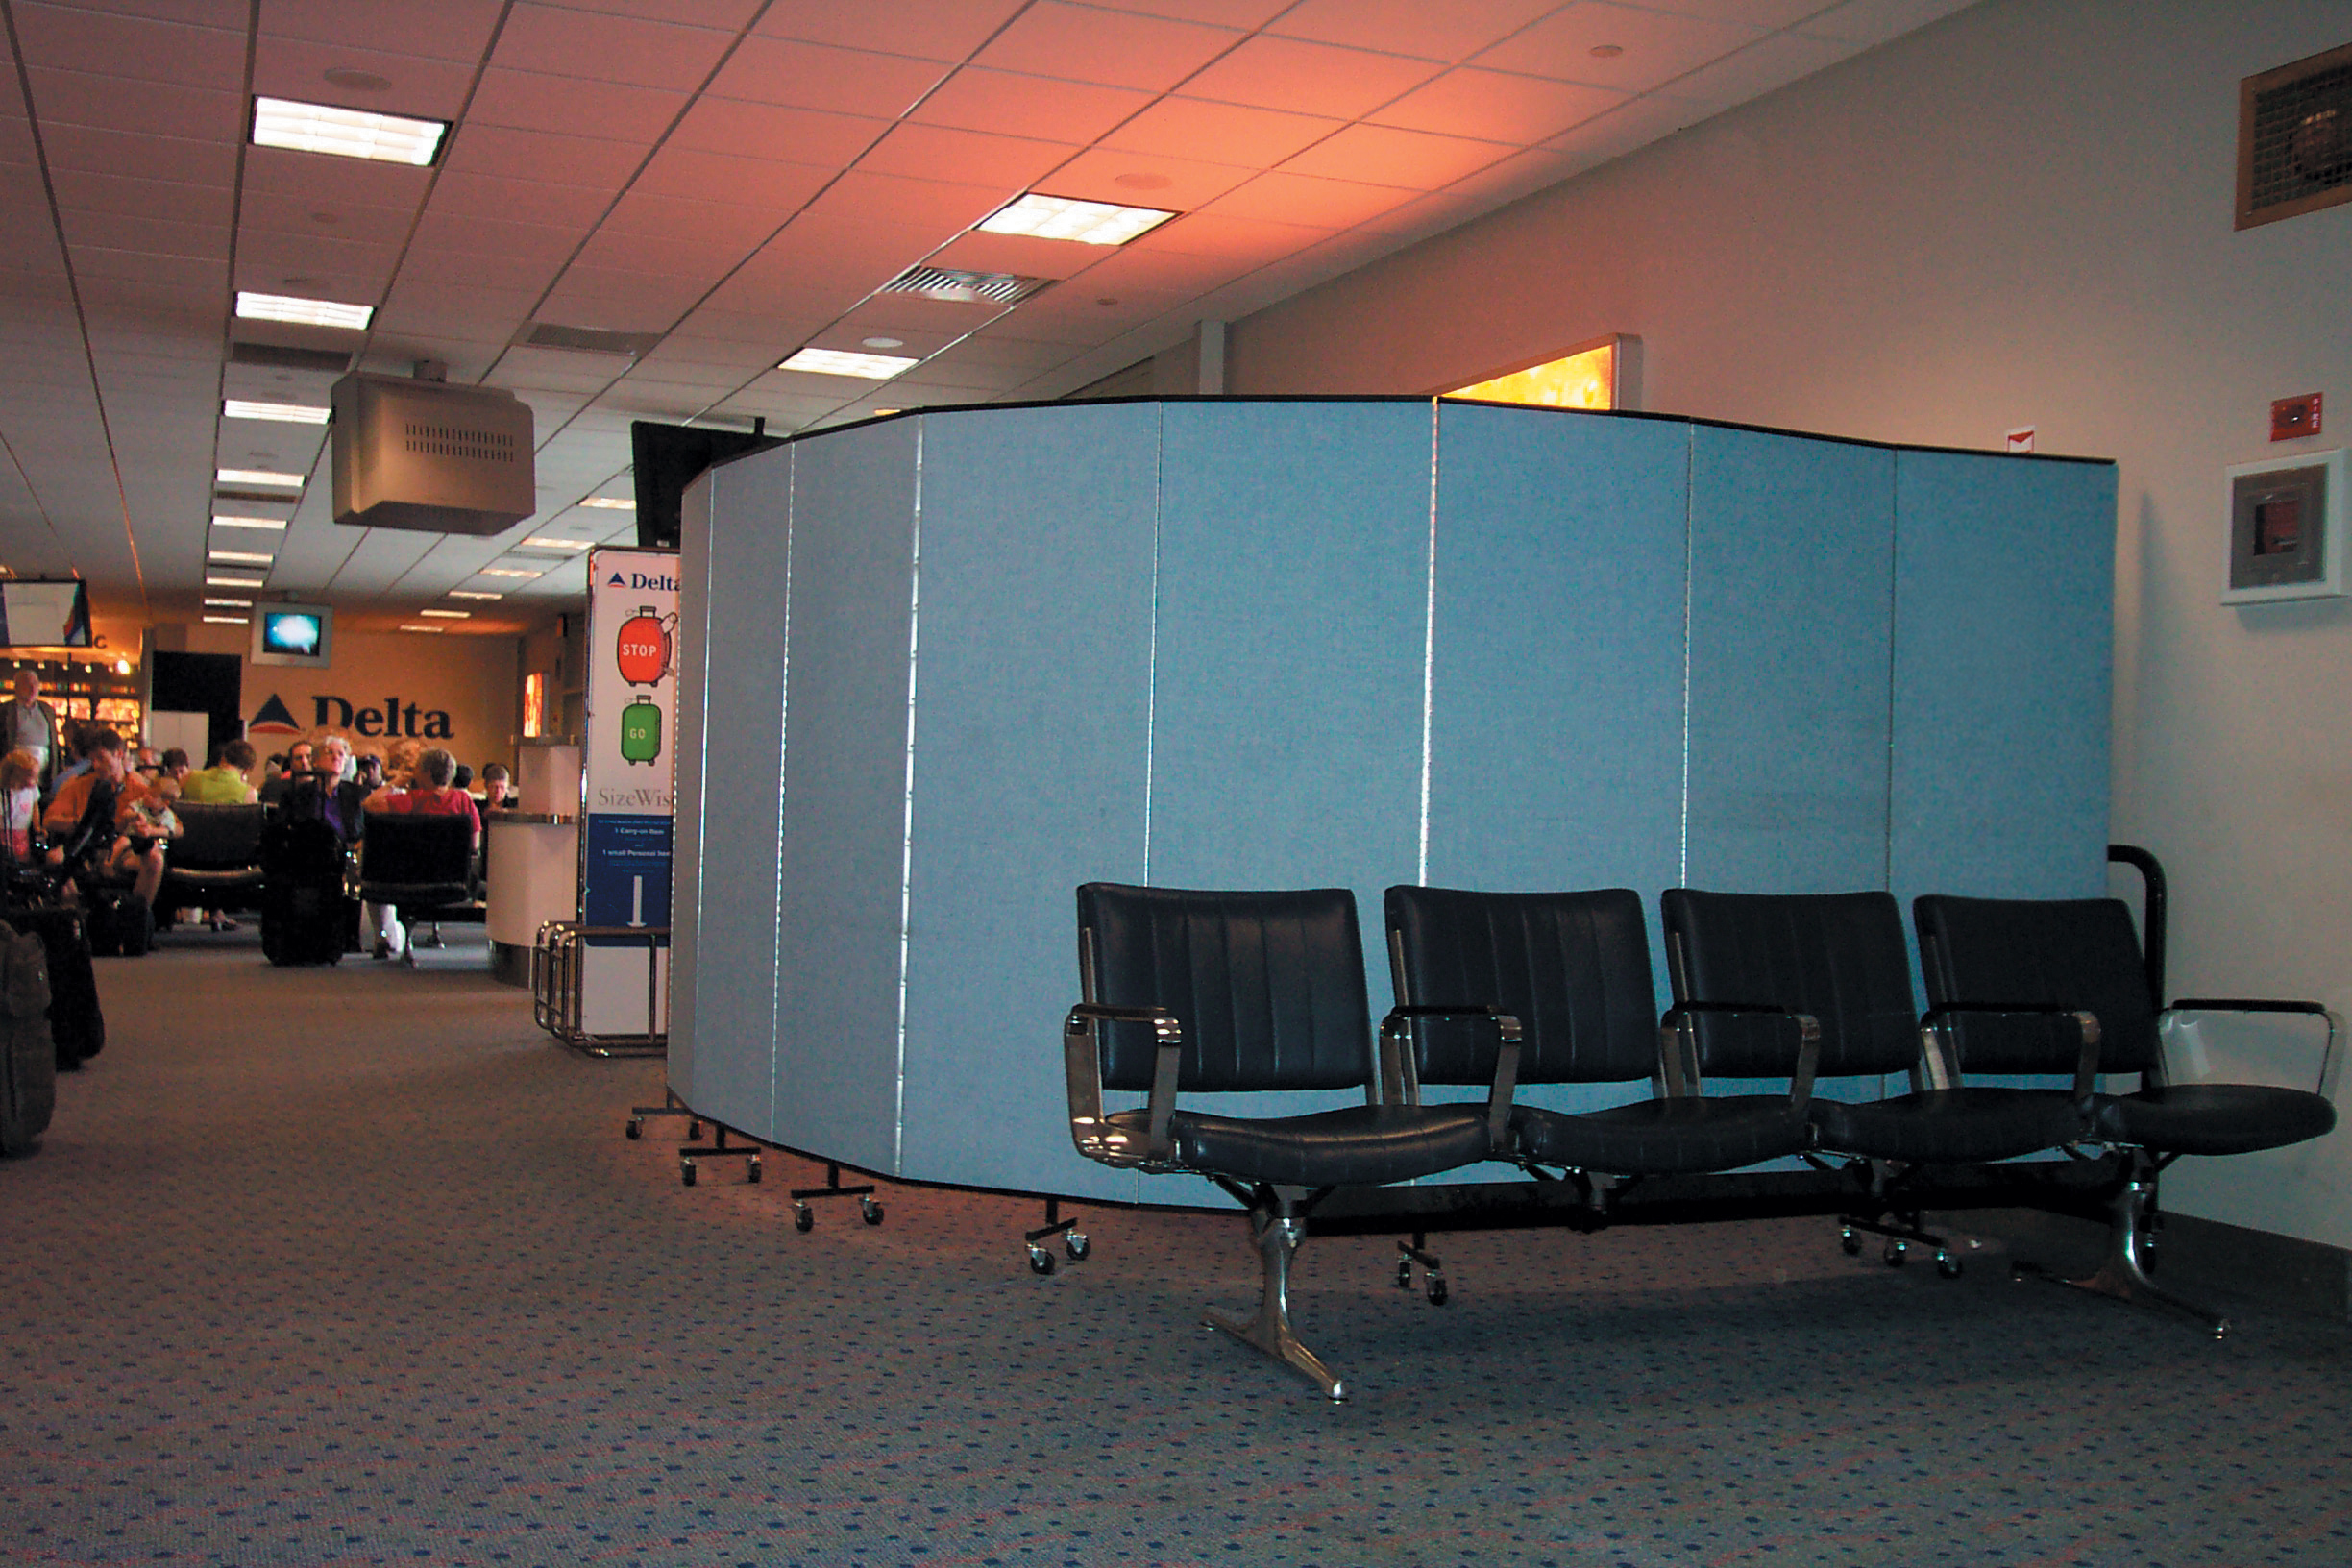 A blue room divider arranged in a half circle hides a screening area in an airport